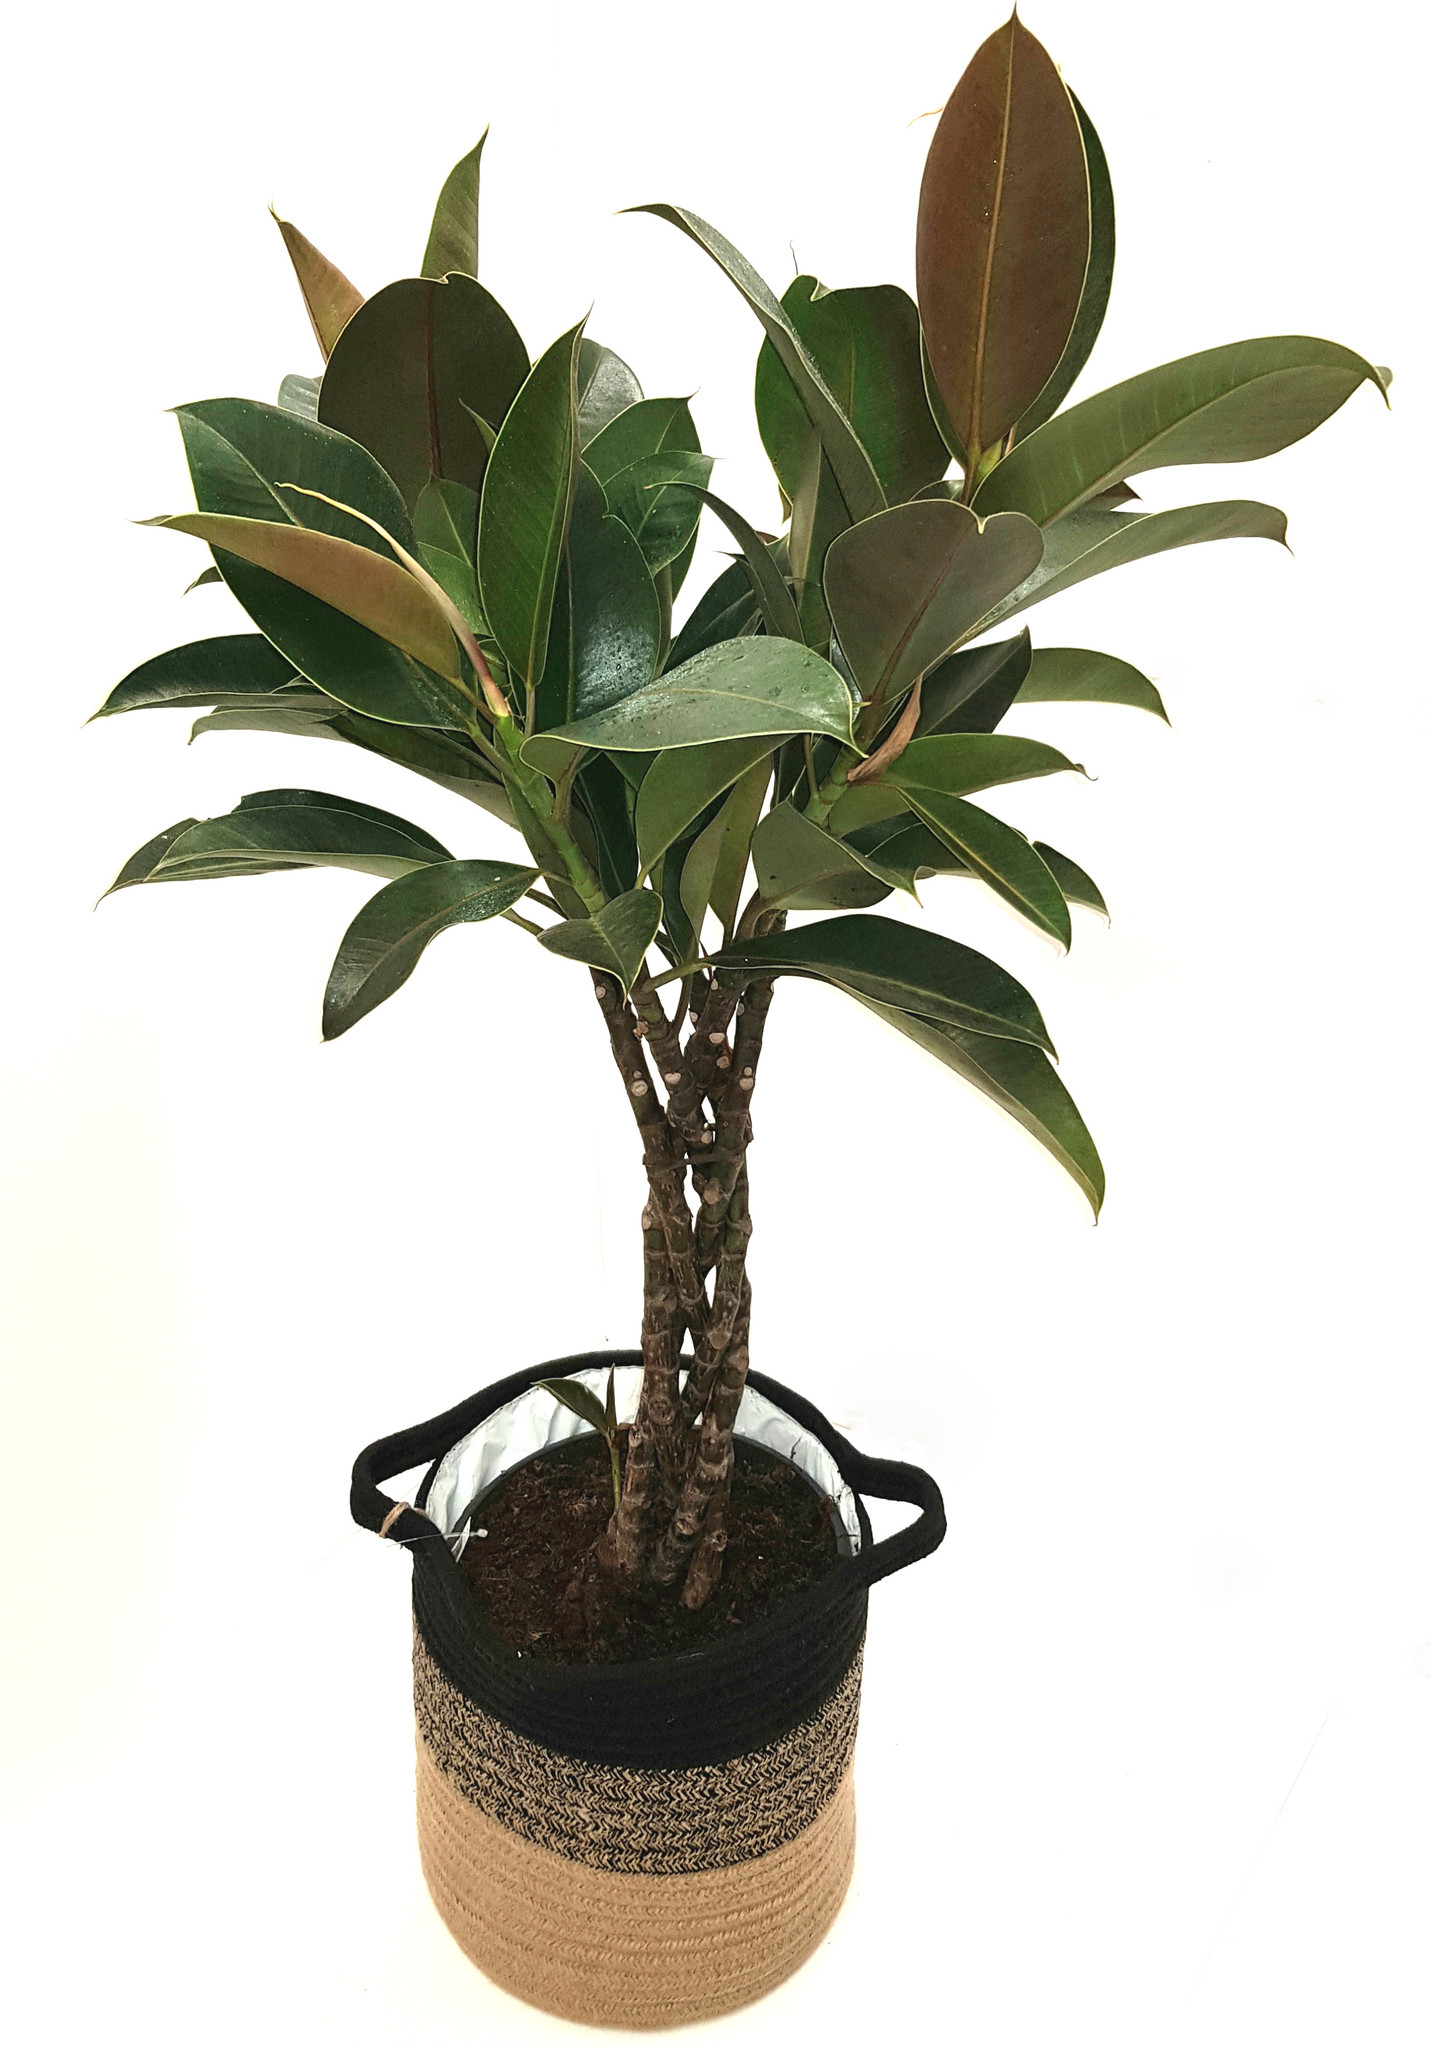 Braided stem indoor house ficus elastica rubber plant .Easy care with large leaves .